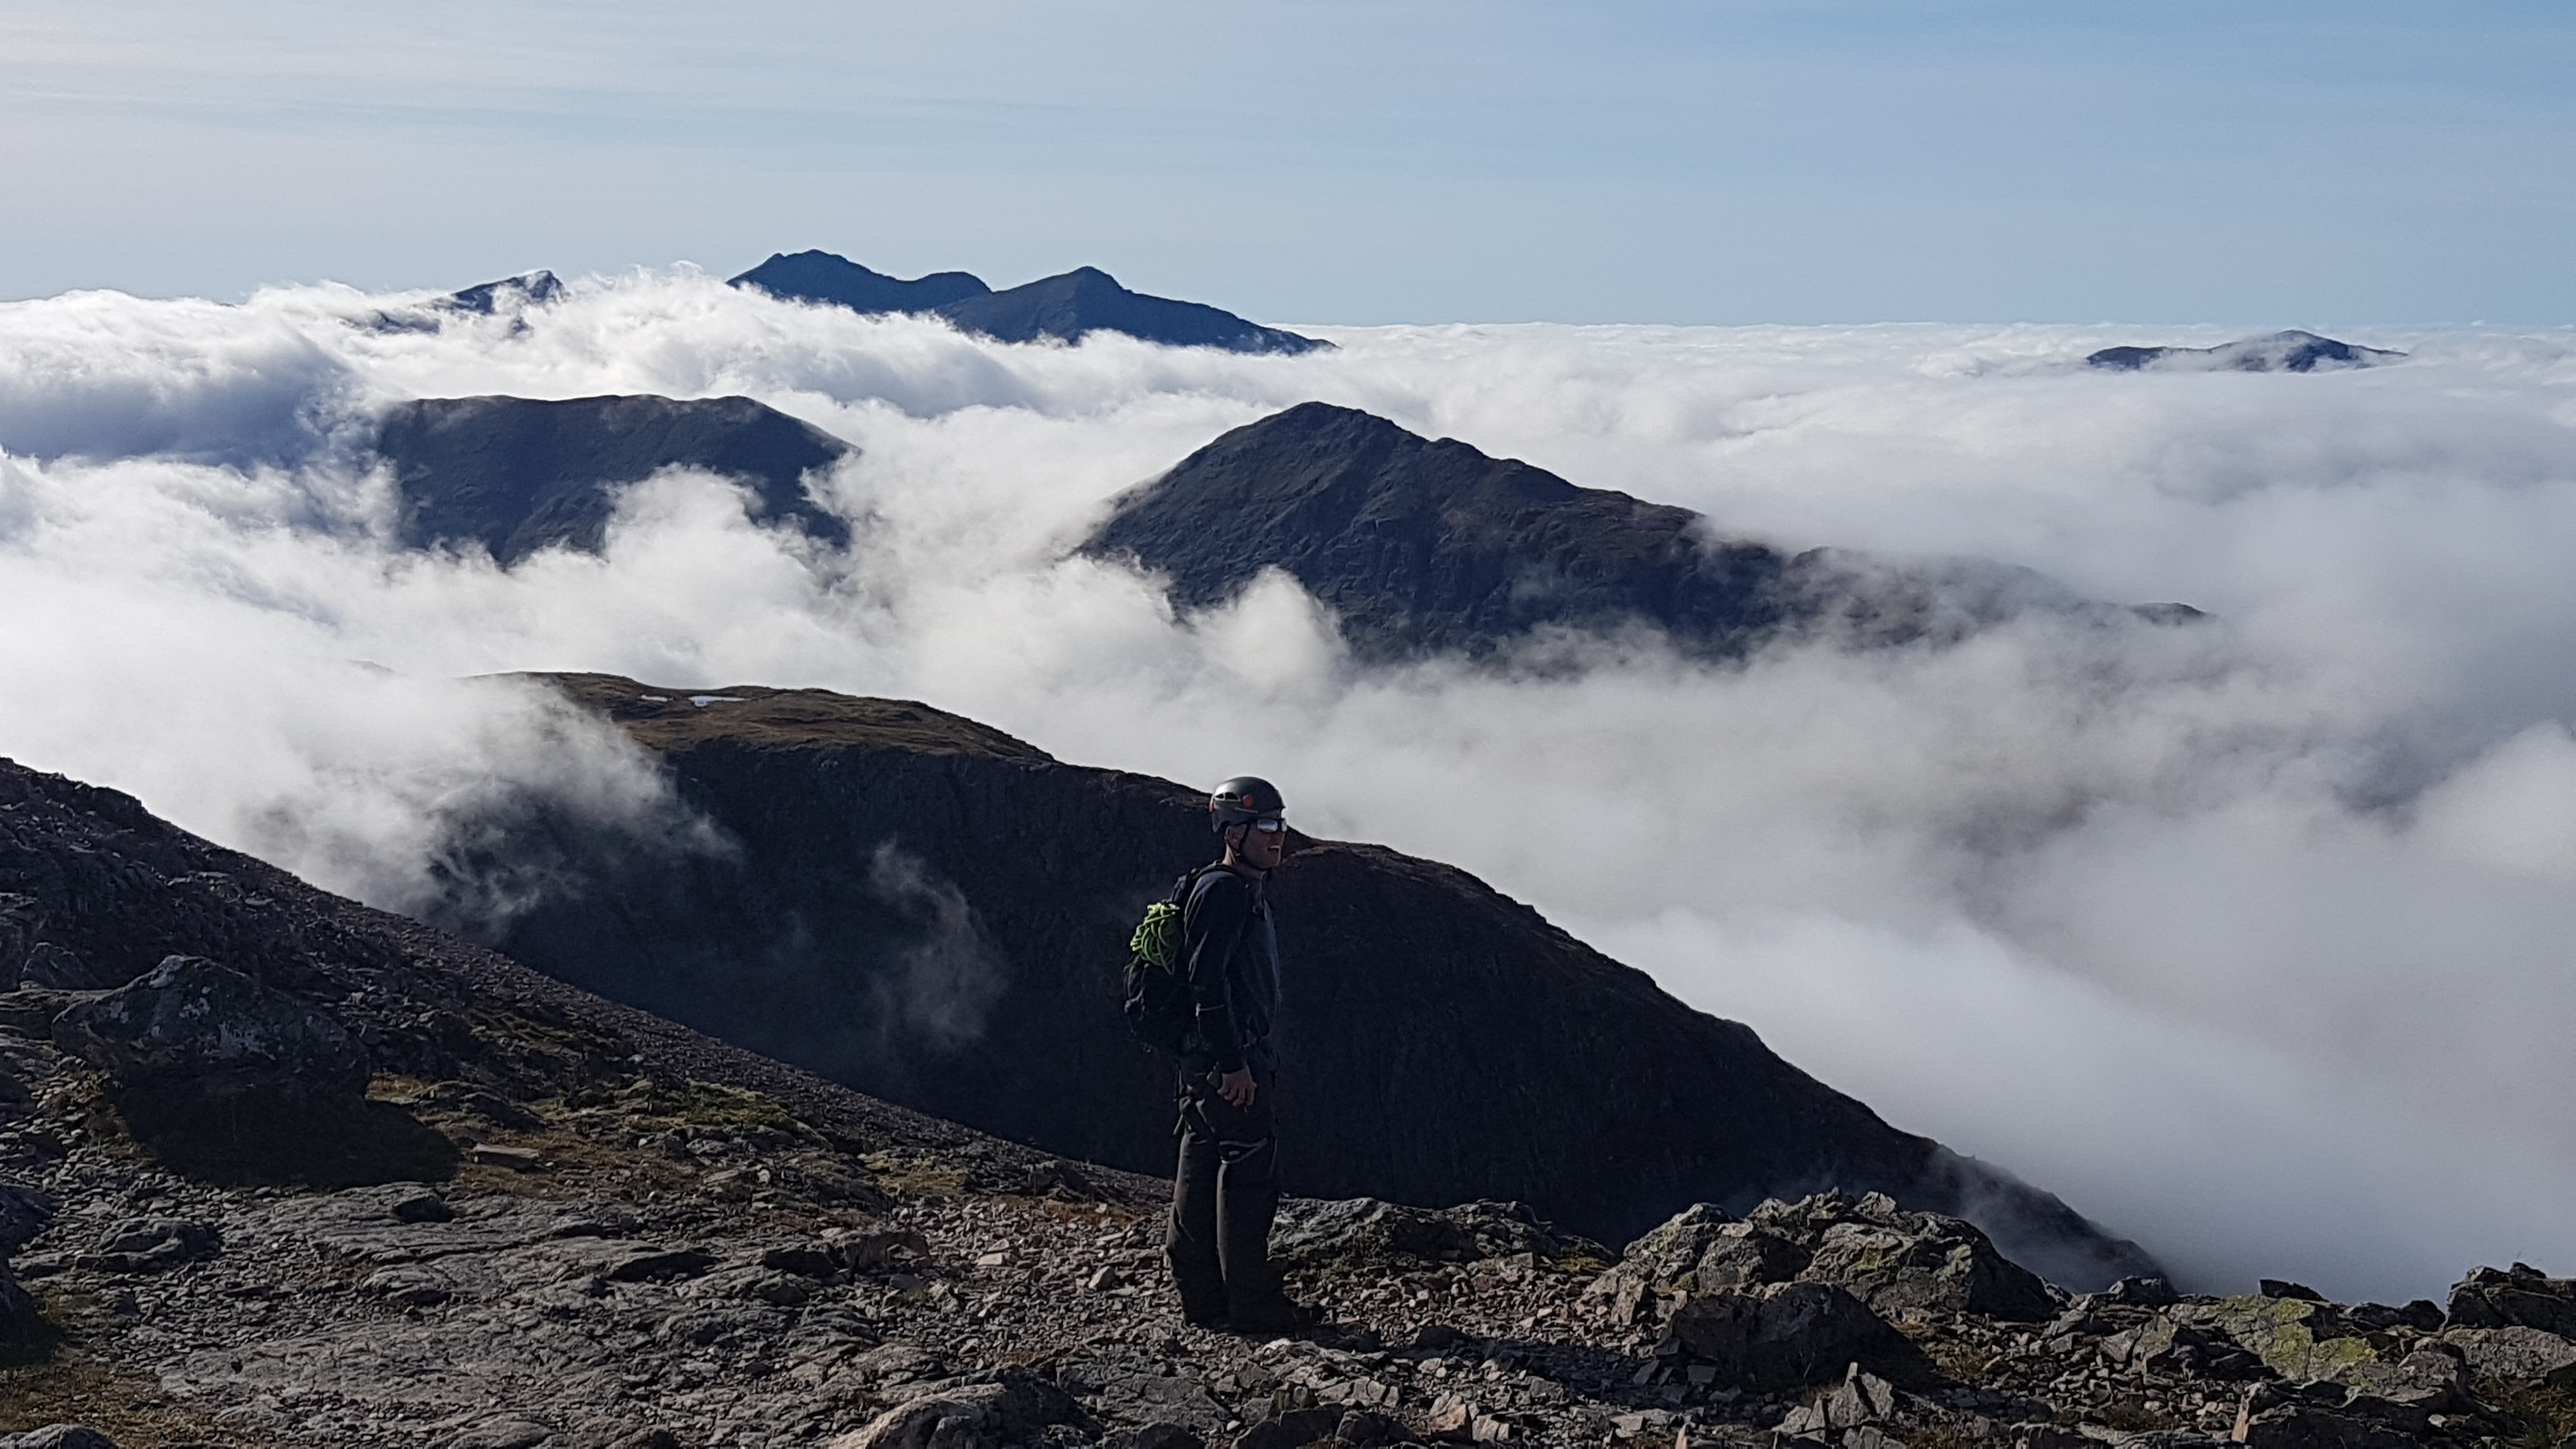 Views from Stob Dearg after a climbing Curved Ridge with a Curved Ridge Guide from Lochaber Guides.